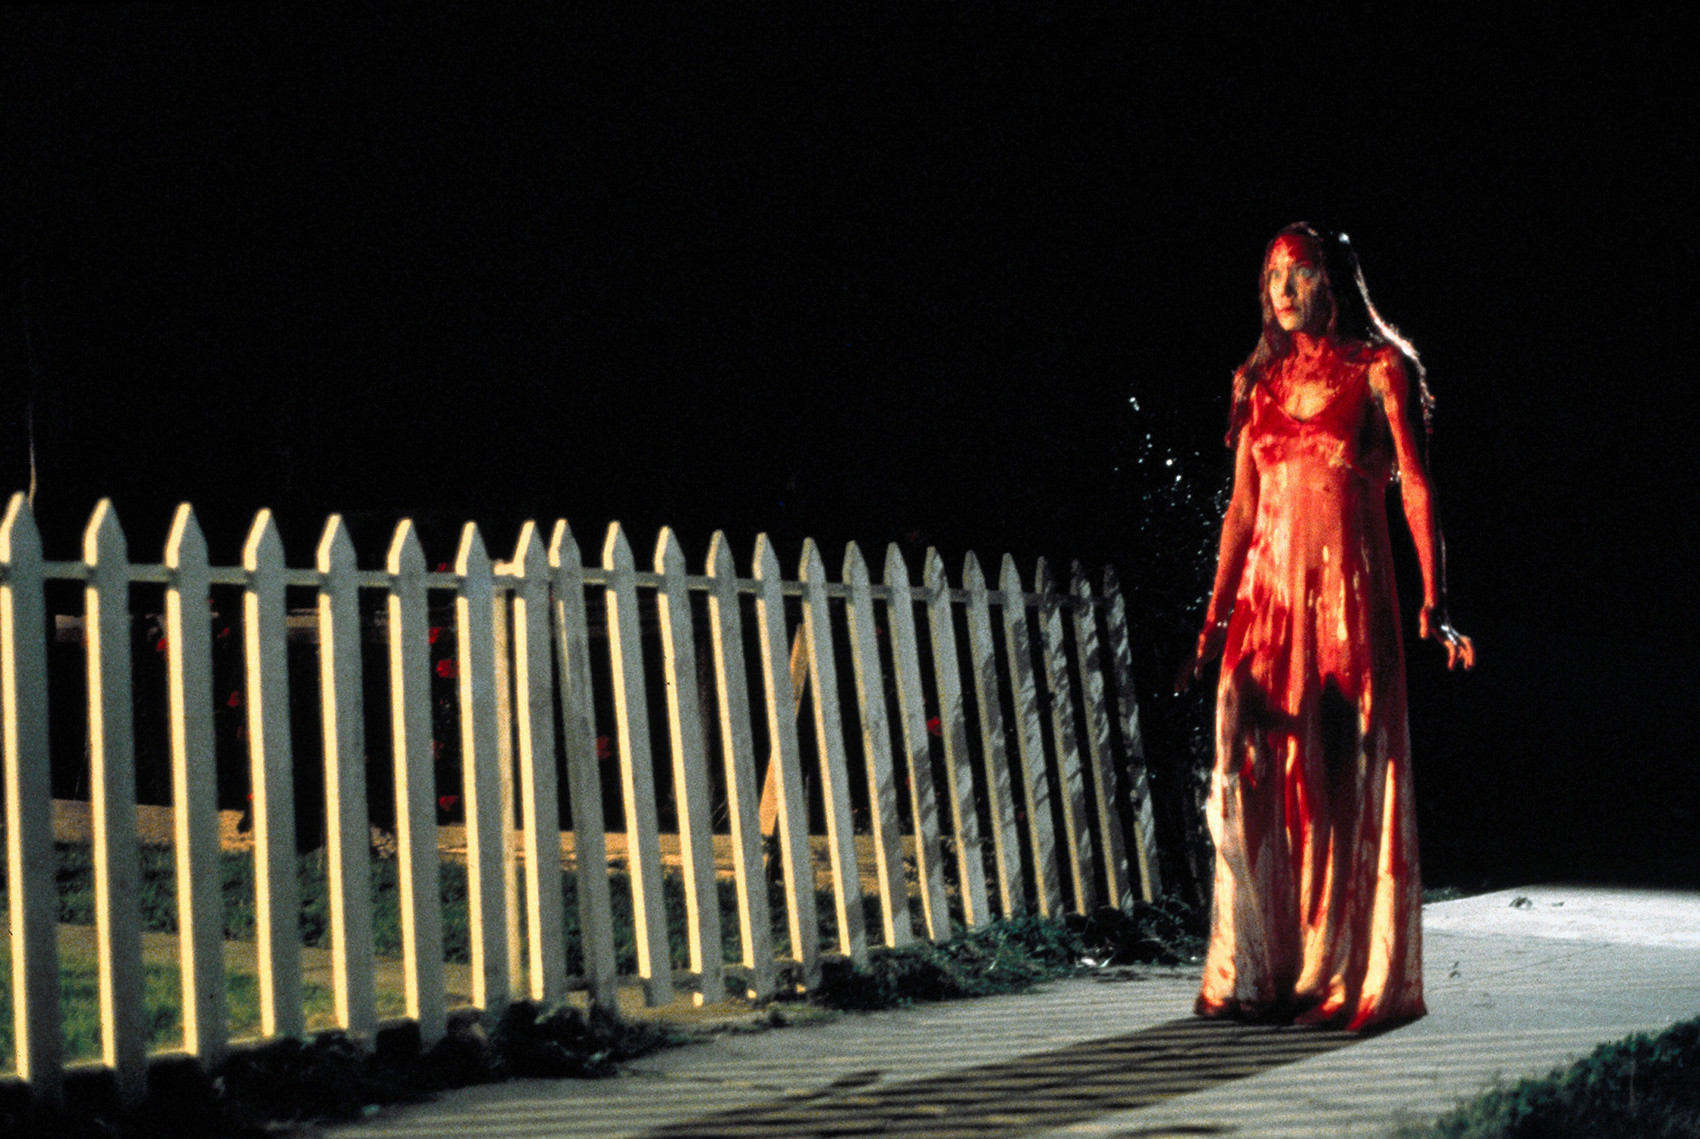 Carrie. 1976. USA. Brian De Palma. Image courtesy of Photofest